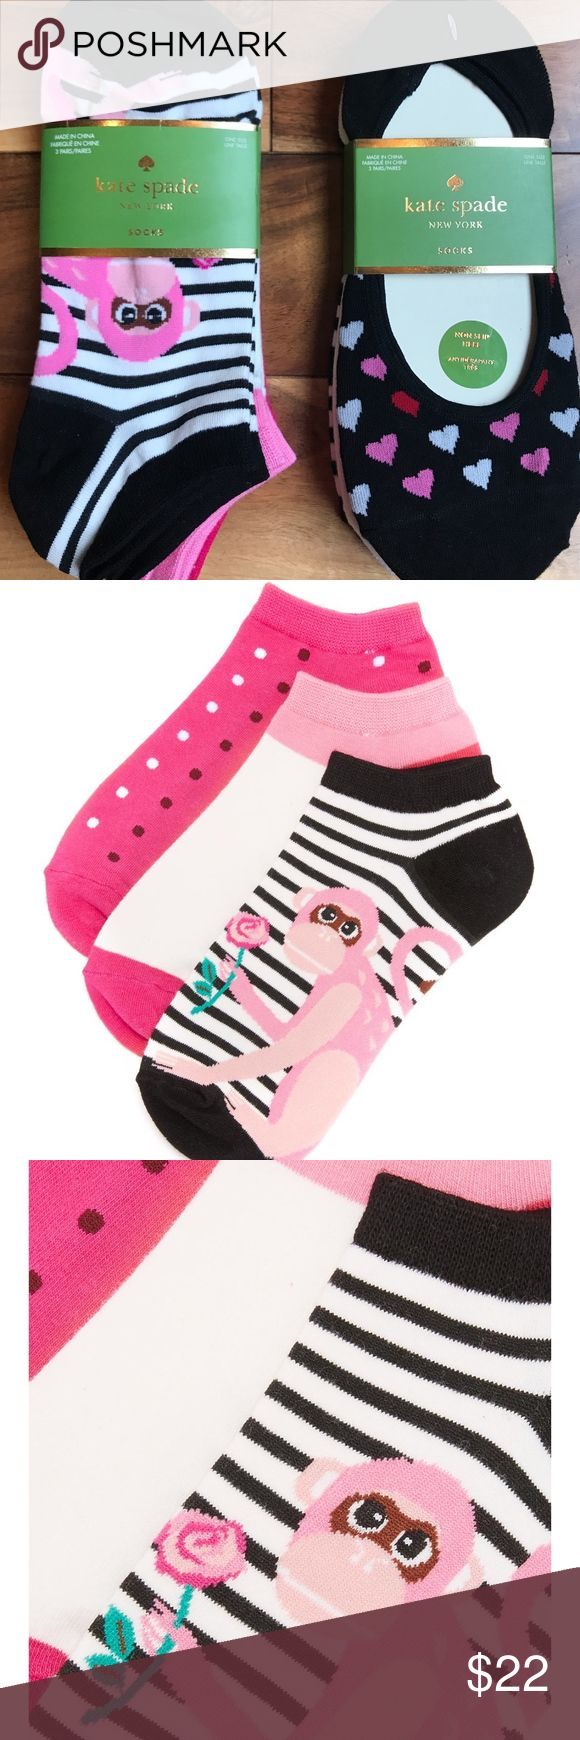 Kate Spade Womens Socks Lot of 2 Packs NWT! Kate Spade Womens Socks Lot of 2 Packs NWT! You will get to Packs each containing 3 pair of socks for a total of 6 pairs of socks! NEW  *A 3-pack of Kate Spade New York no-show socks with a cute monkey graphic and petite polka dots. Ribbed cuffs.  *A 3-pack of Kate Spade New York Non Slip Heel socks with hearts, plain white and black/white stripe. kate spade Accessories Hosiery & Socks